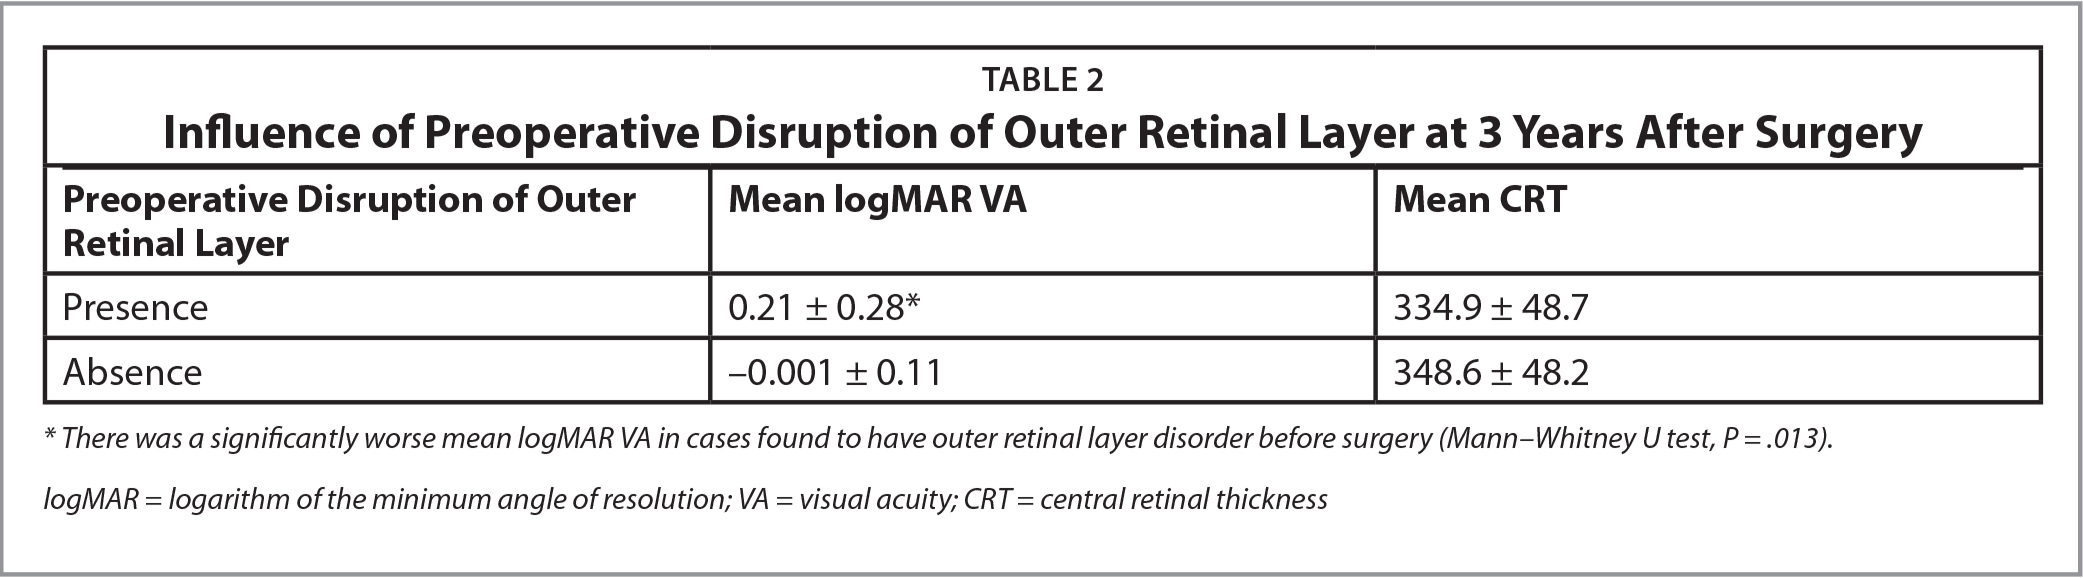 Influence of Preoperative Disruption of Outer Retinal Layer at 3 Years After Surgery